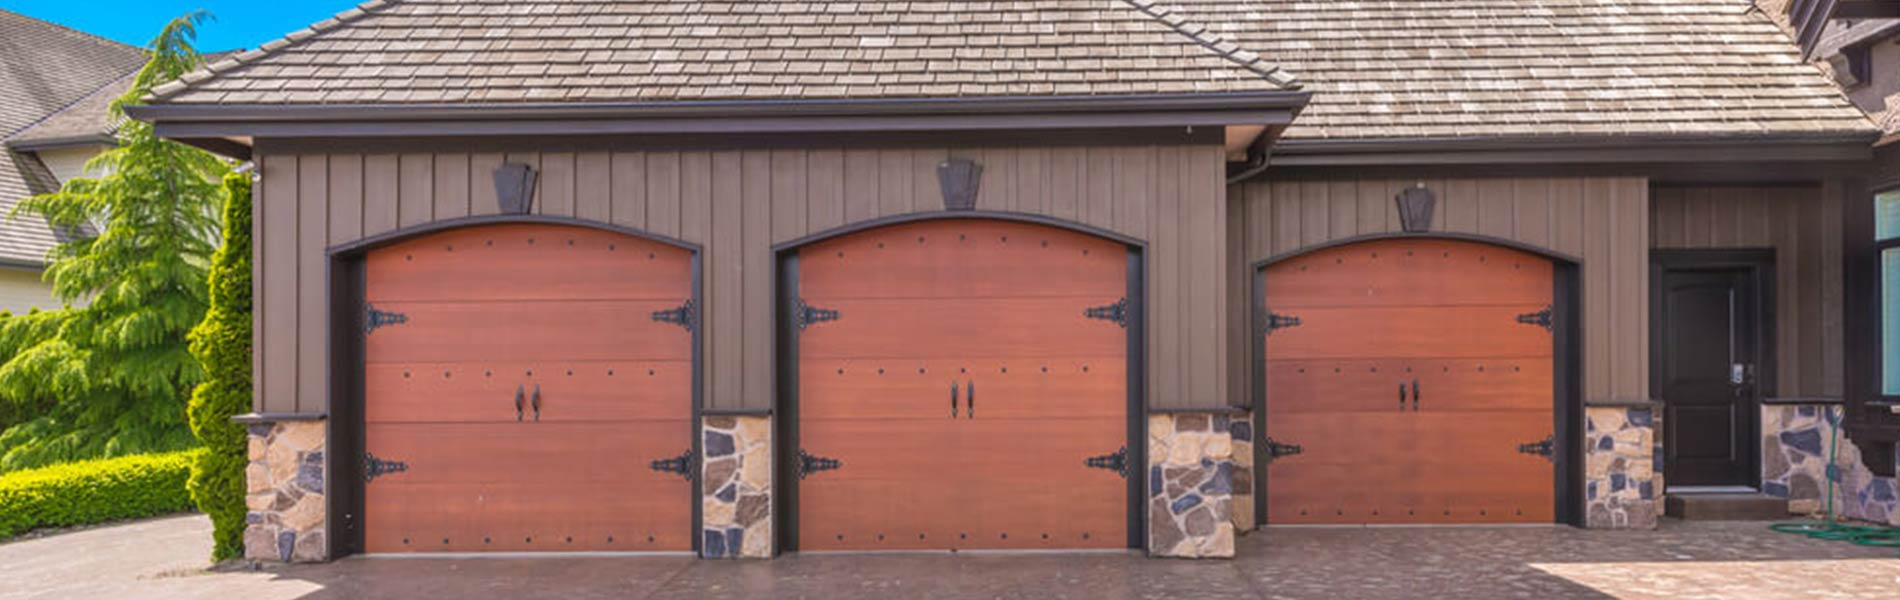 Golden Garage Door Service, Cleveland, OH 216-505-7379